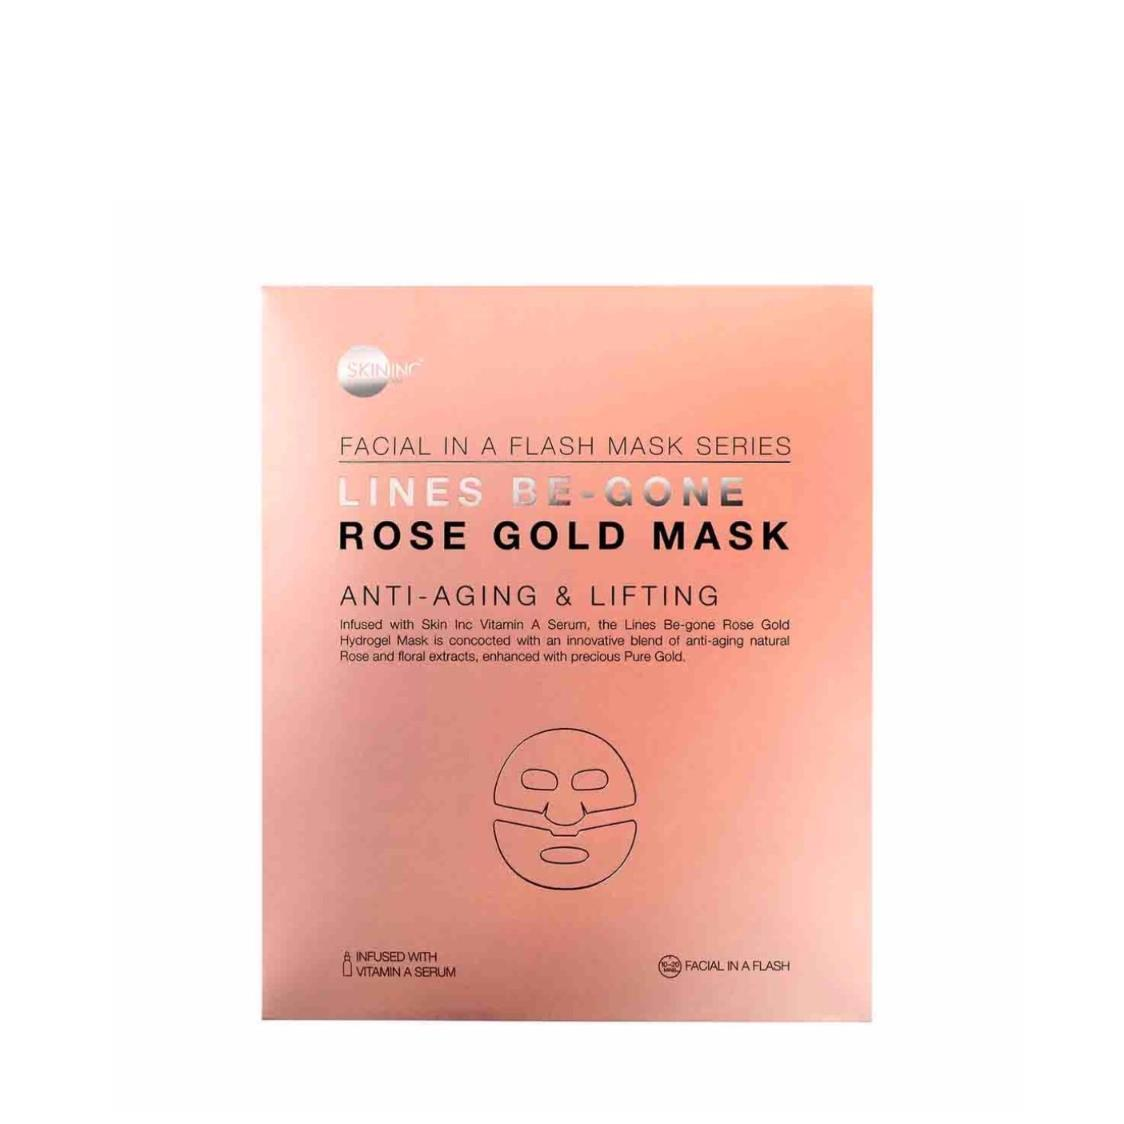 Lines Be-Gone Rose Gold Mask single